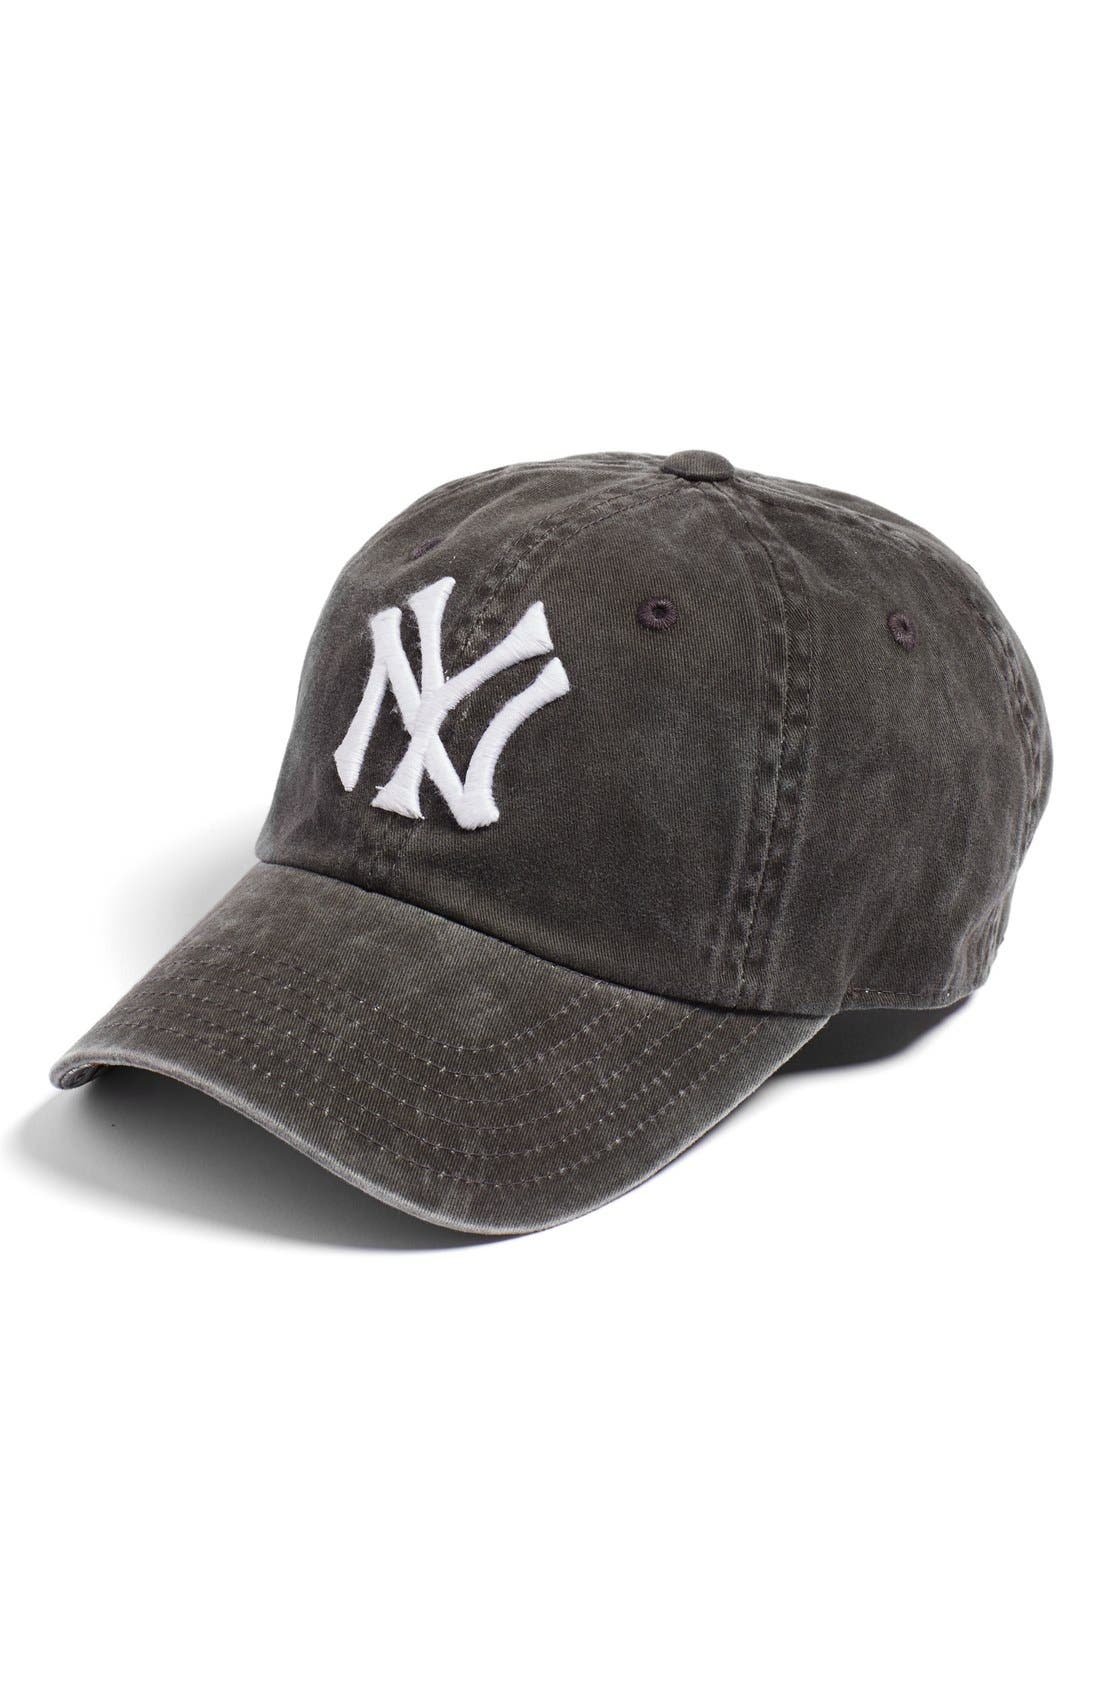 AMERICAN NEEDLE New Raglan New York Yankees Baseball Cap